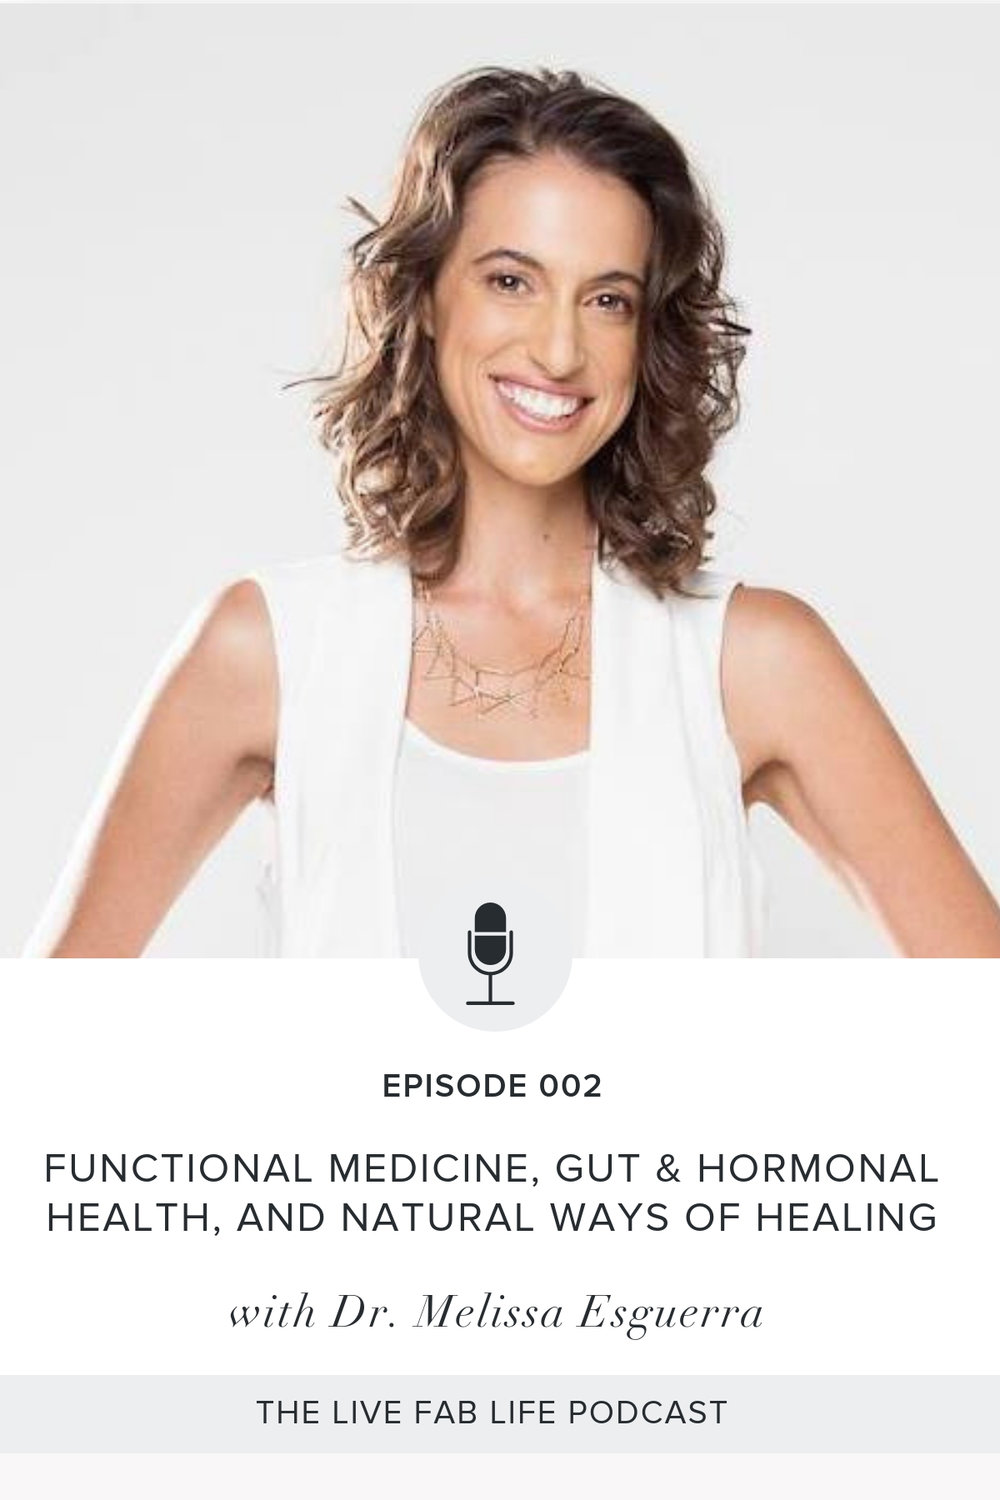 Episode 002: Functional Medicine, Gut & Hormonal Health and Natural Ways of Healing with Dr. Melissa Esguerra